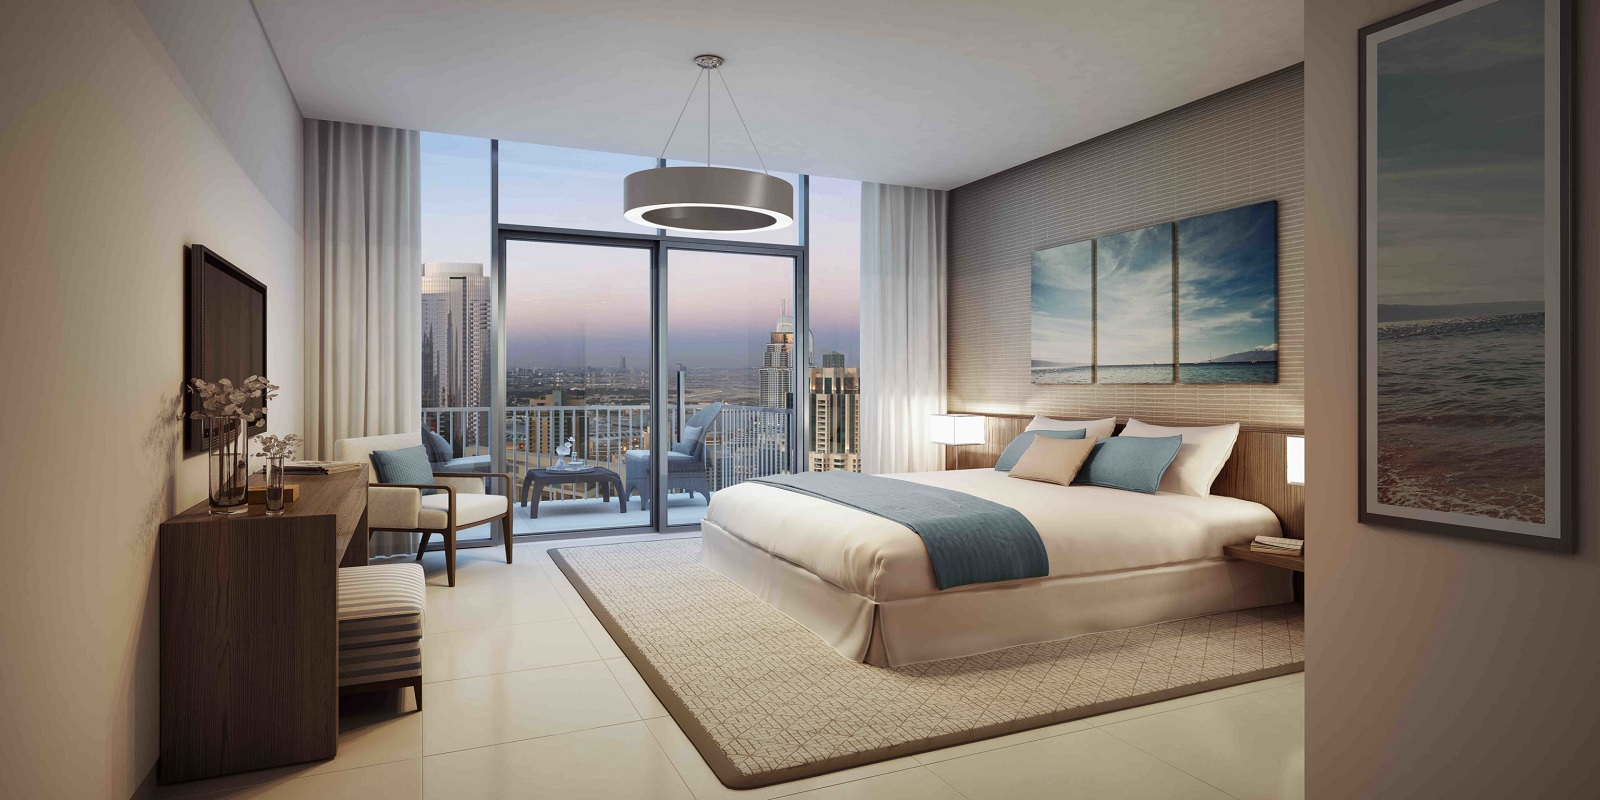 emaar blvd heights project apartment interiors4